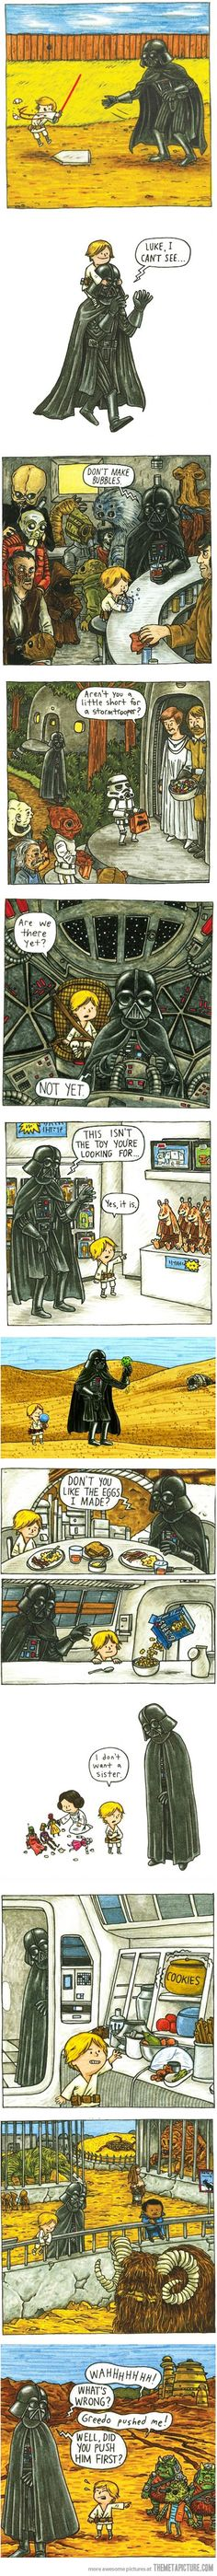 Vader as a good dad